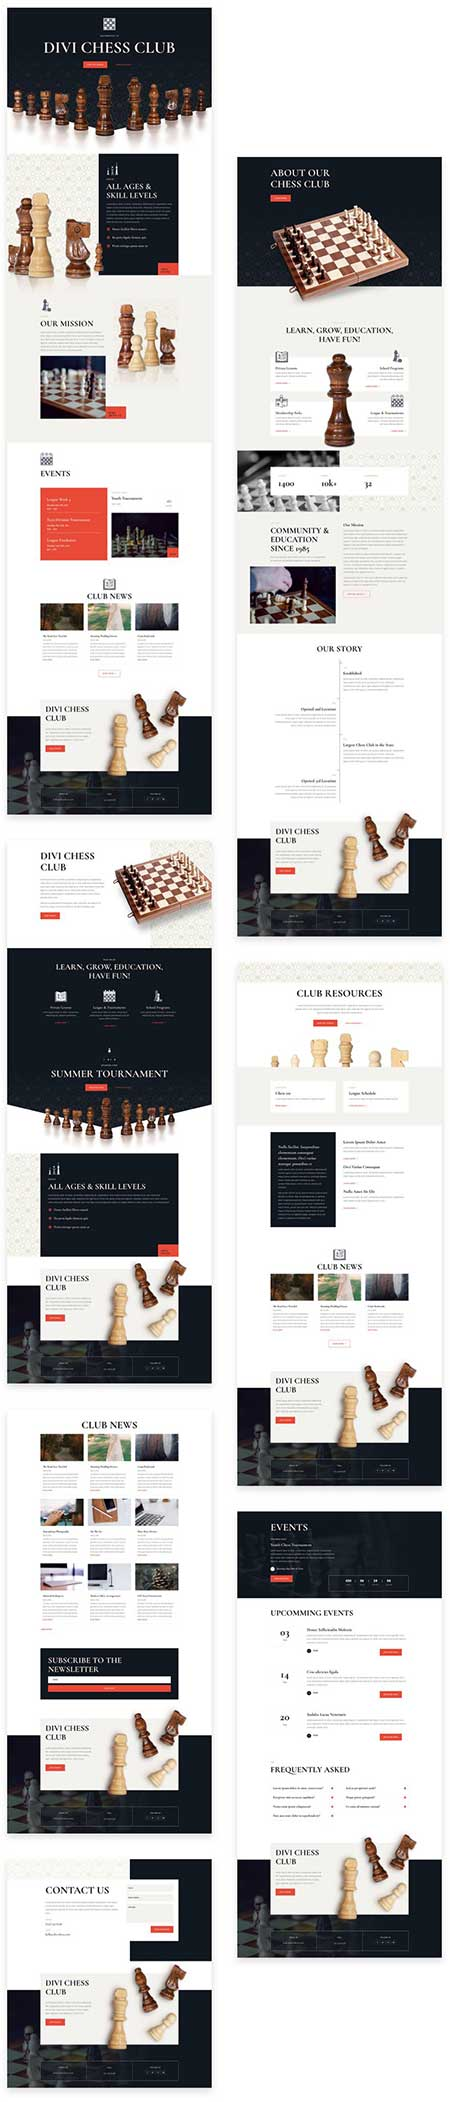 chess club layout for Divi